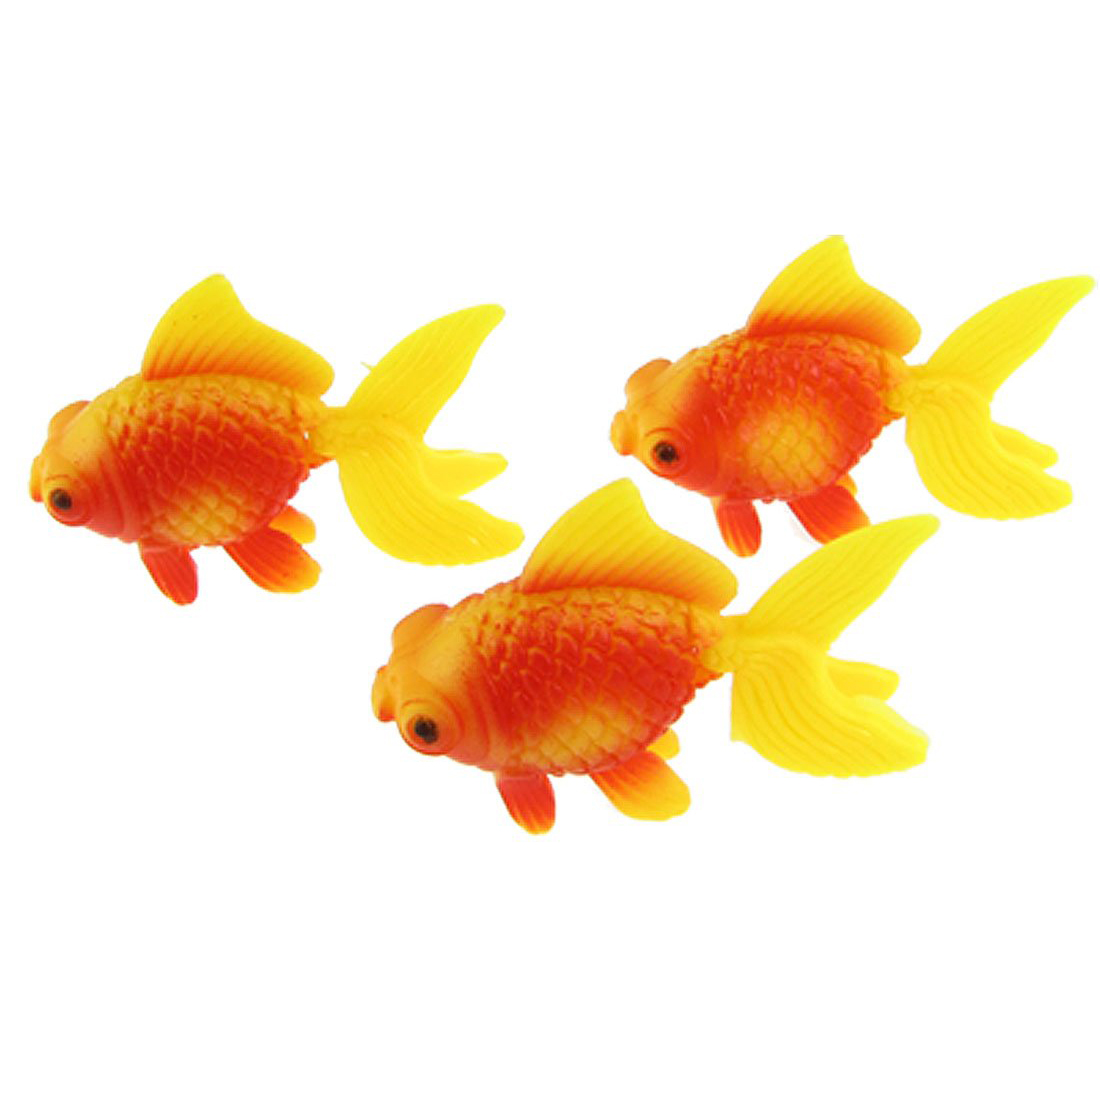 aquarium fish tank plastic swimming gold fish decoration 3 pcs wd ebay